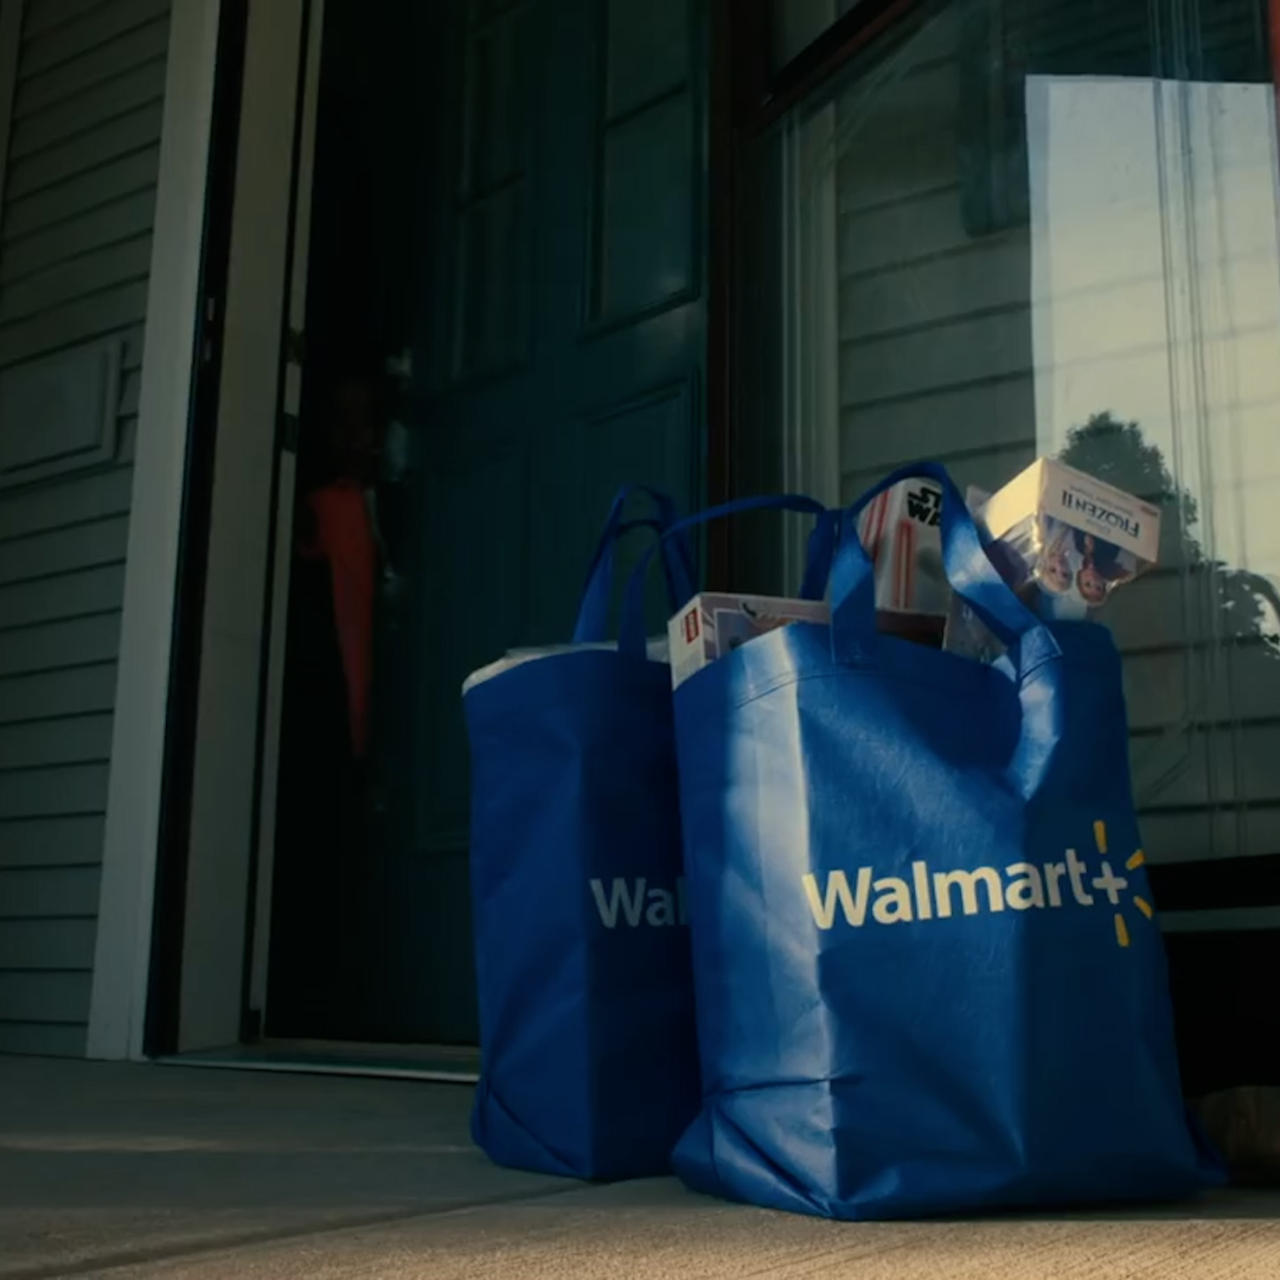 Here's how to get free shipping at Walmart when you sign up for Walmart+